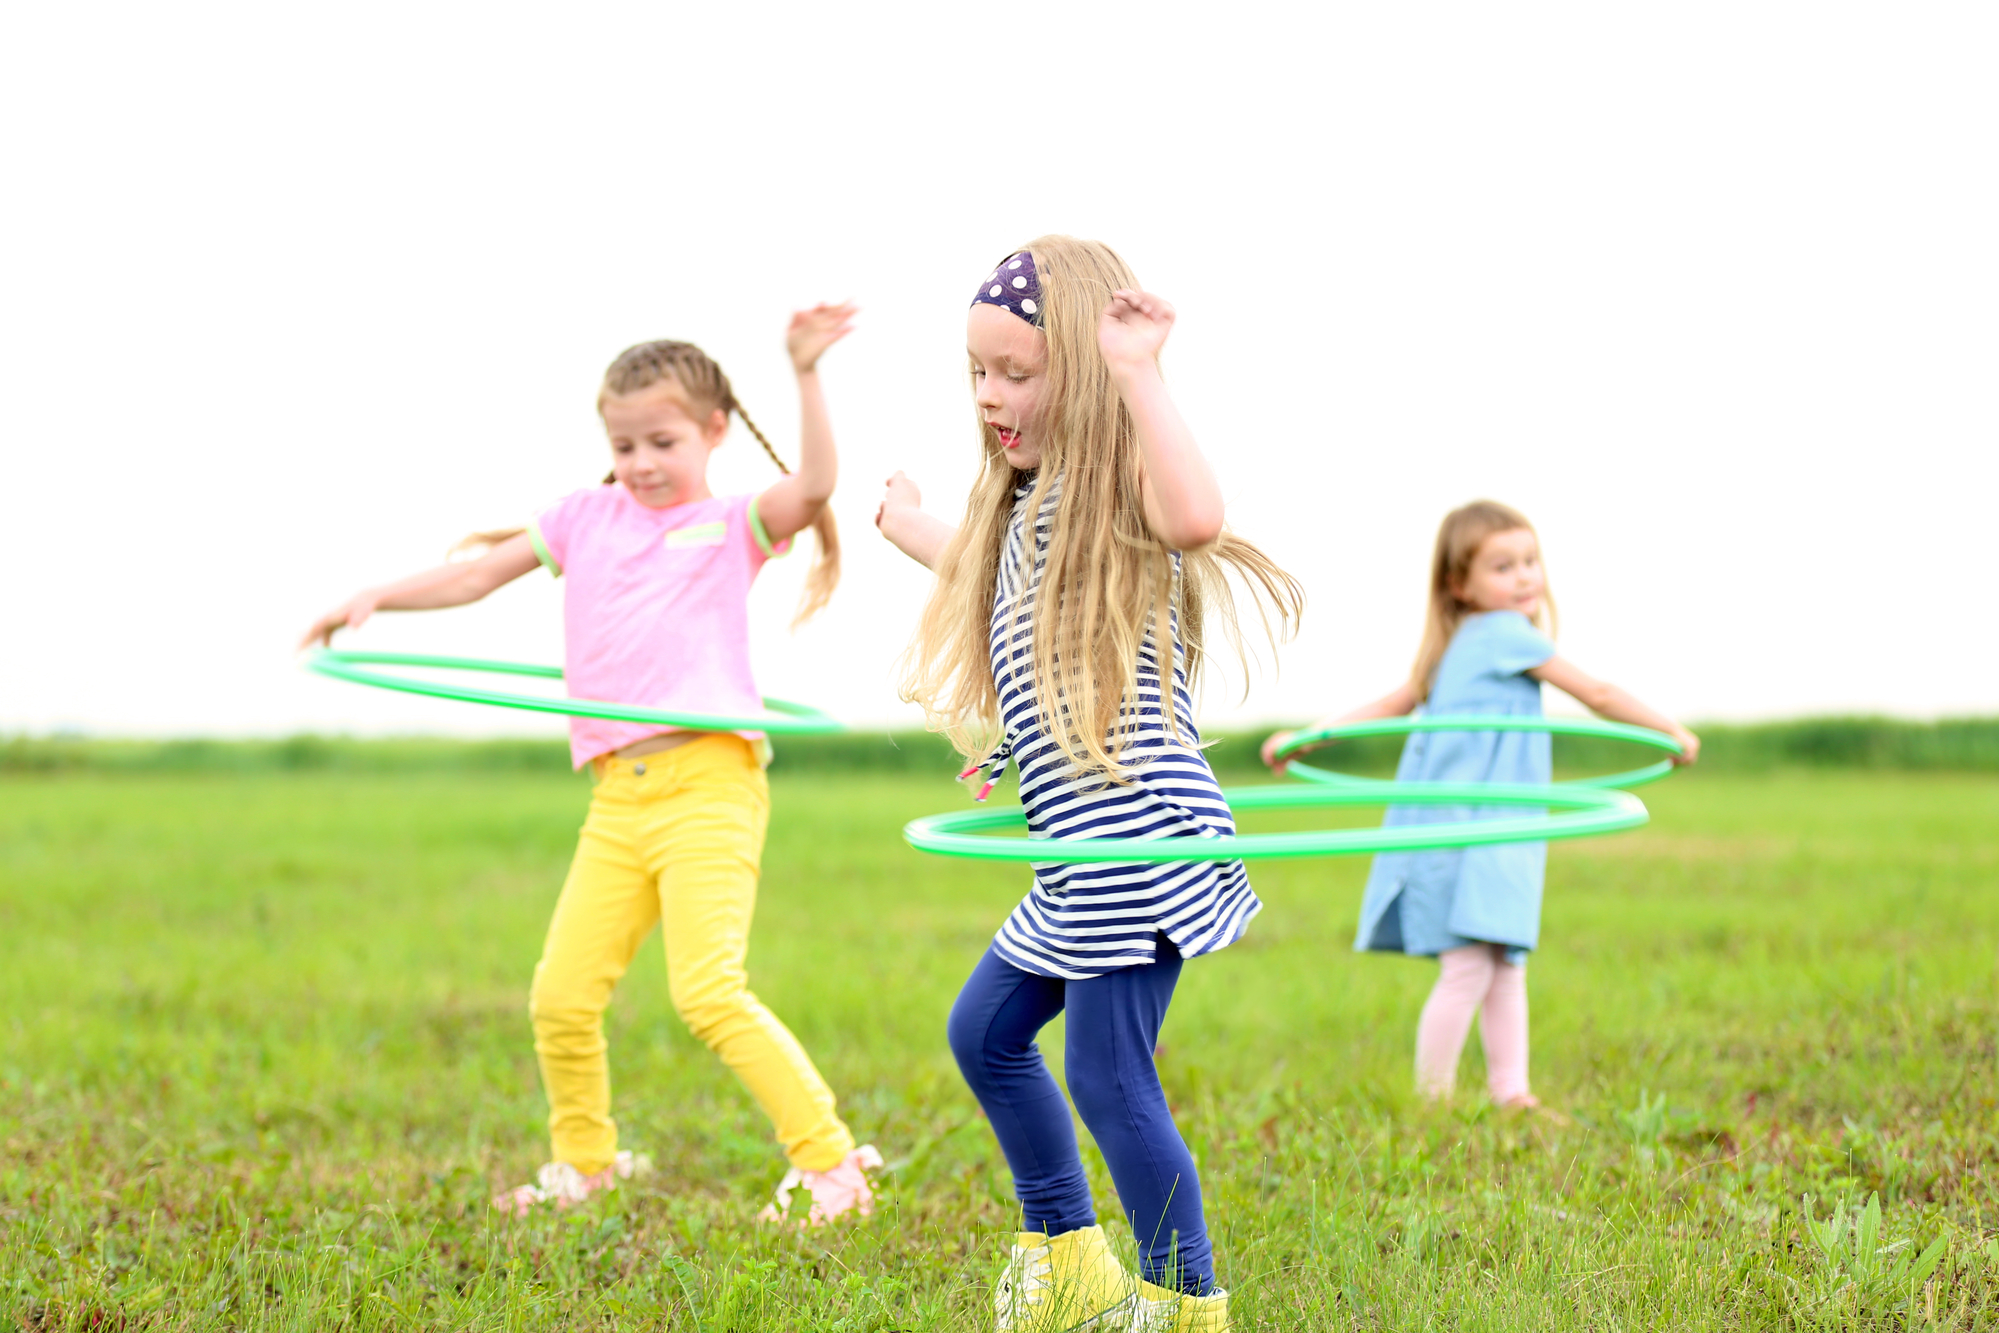 Children having fun with hula hoops outdoor